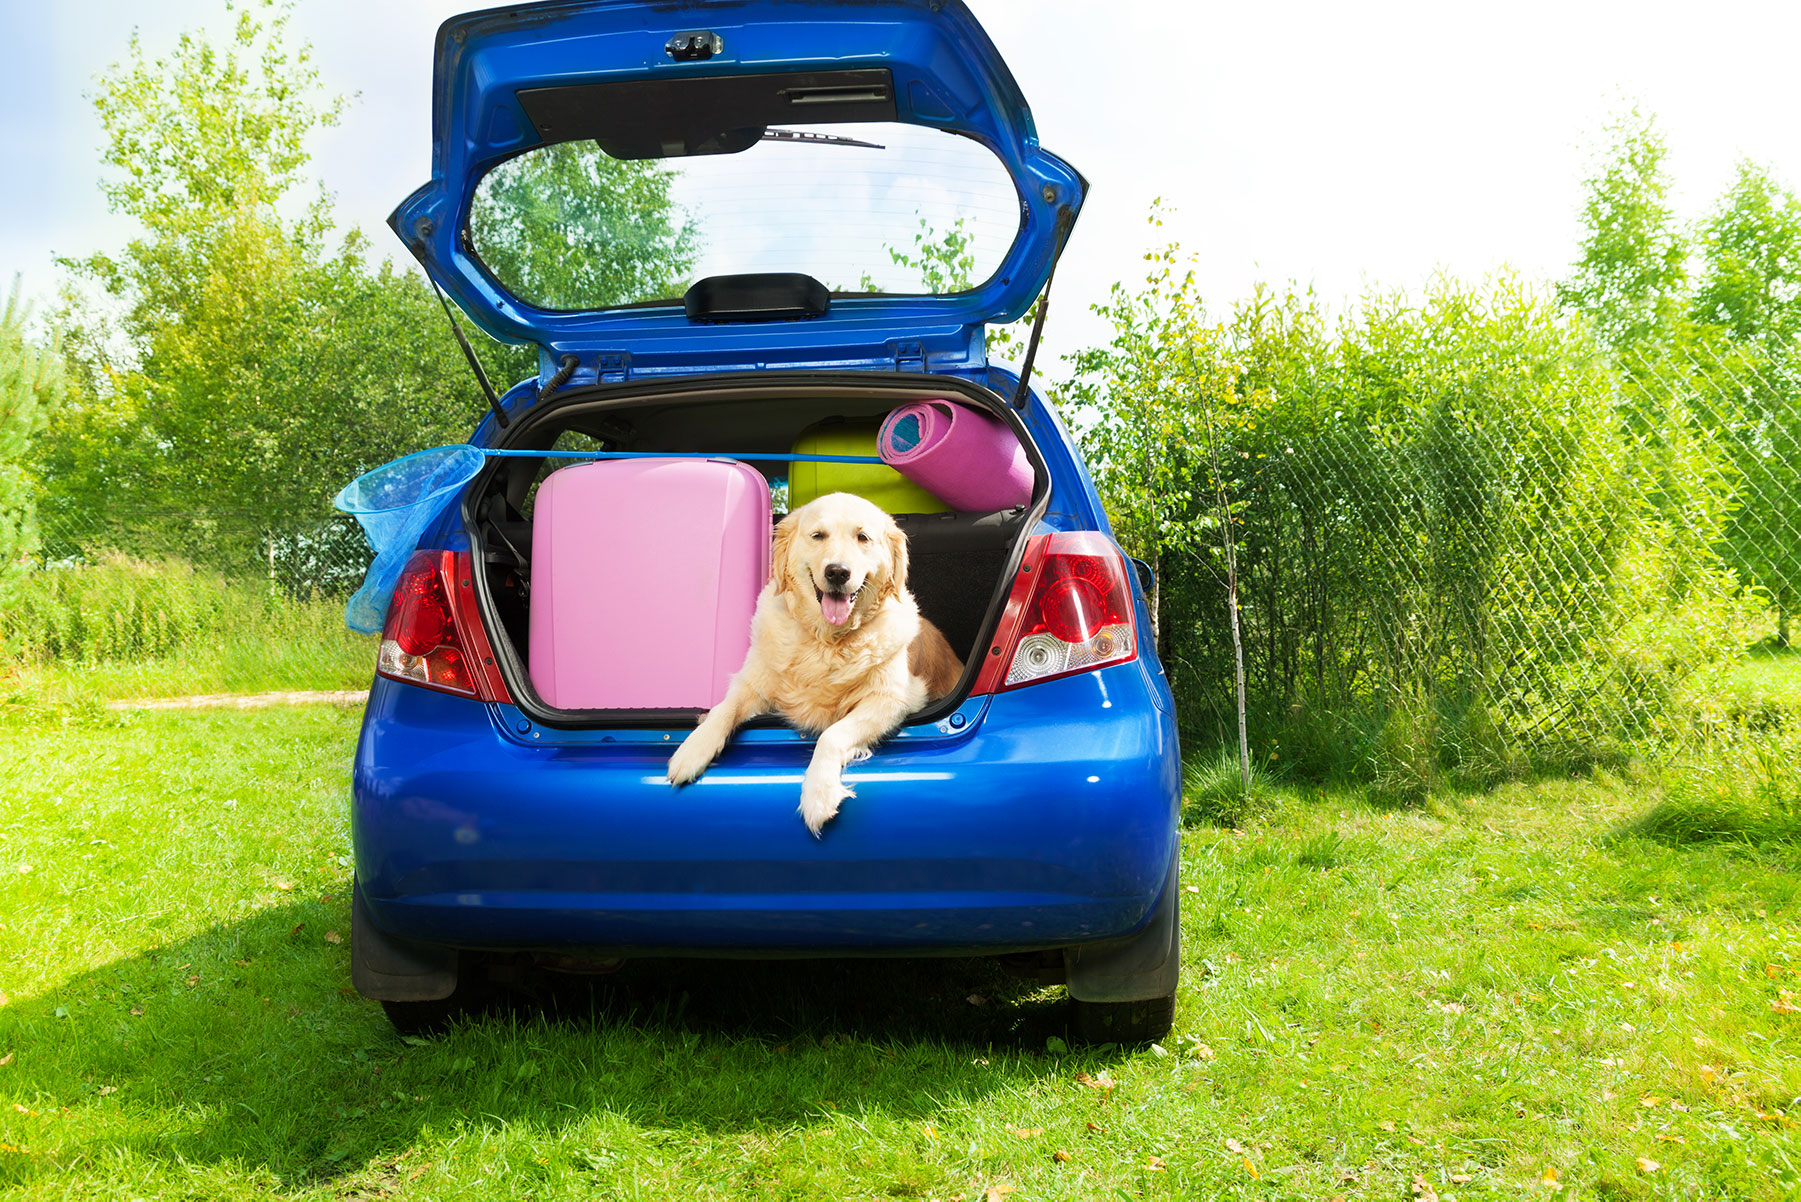 Image of packed family car with dog.